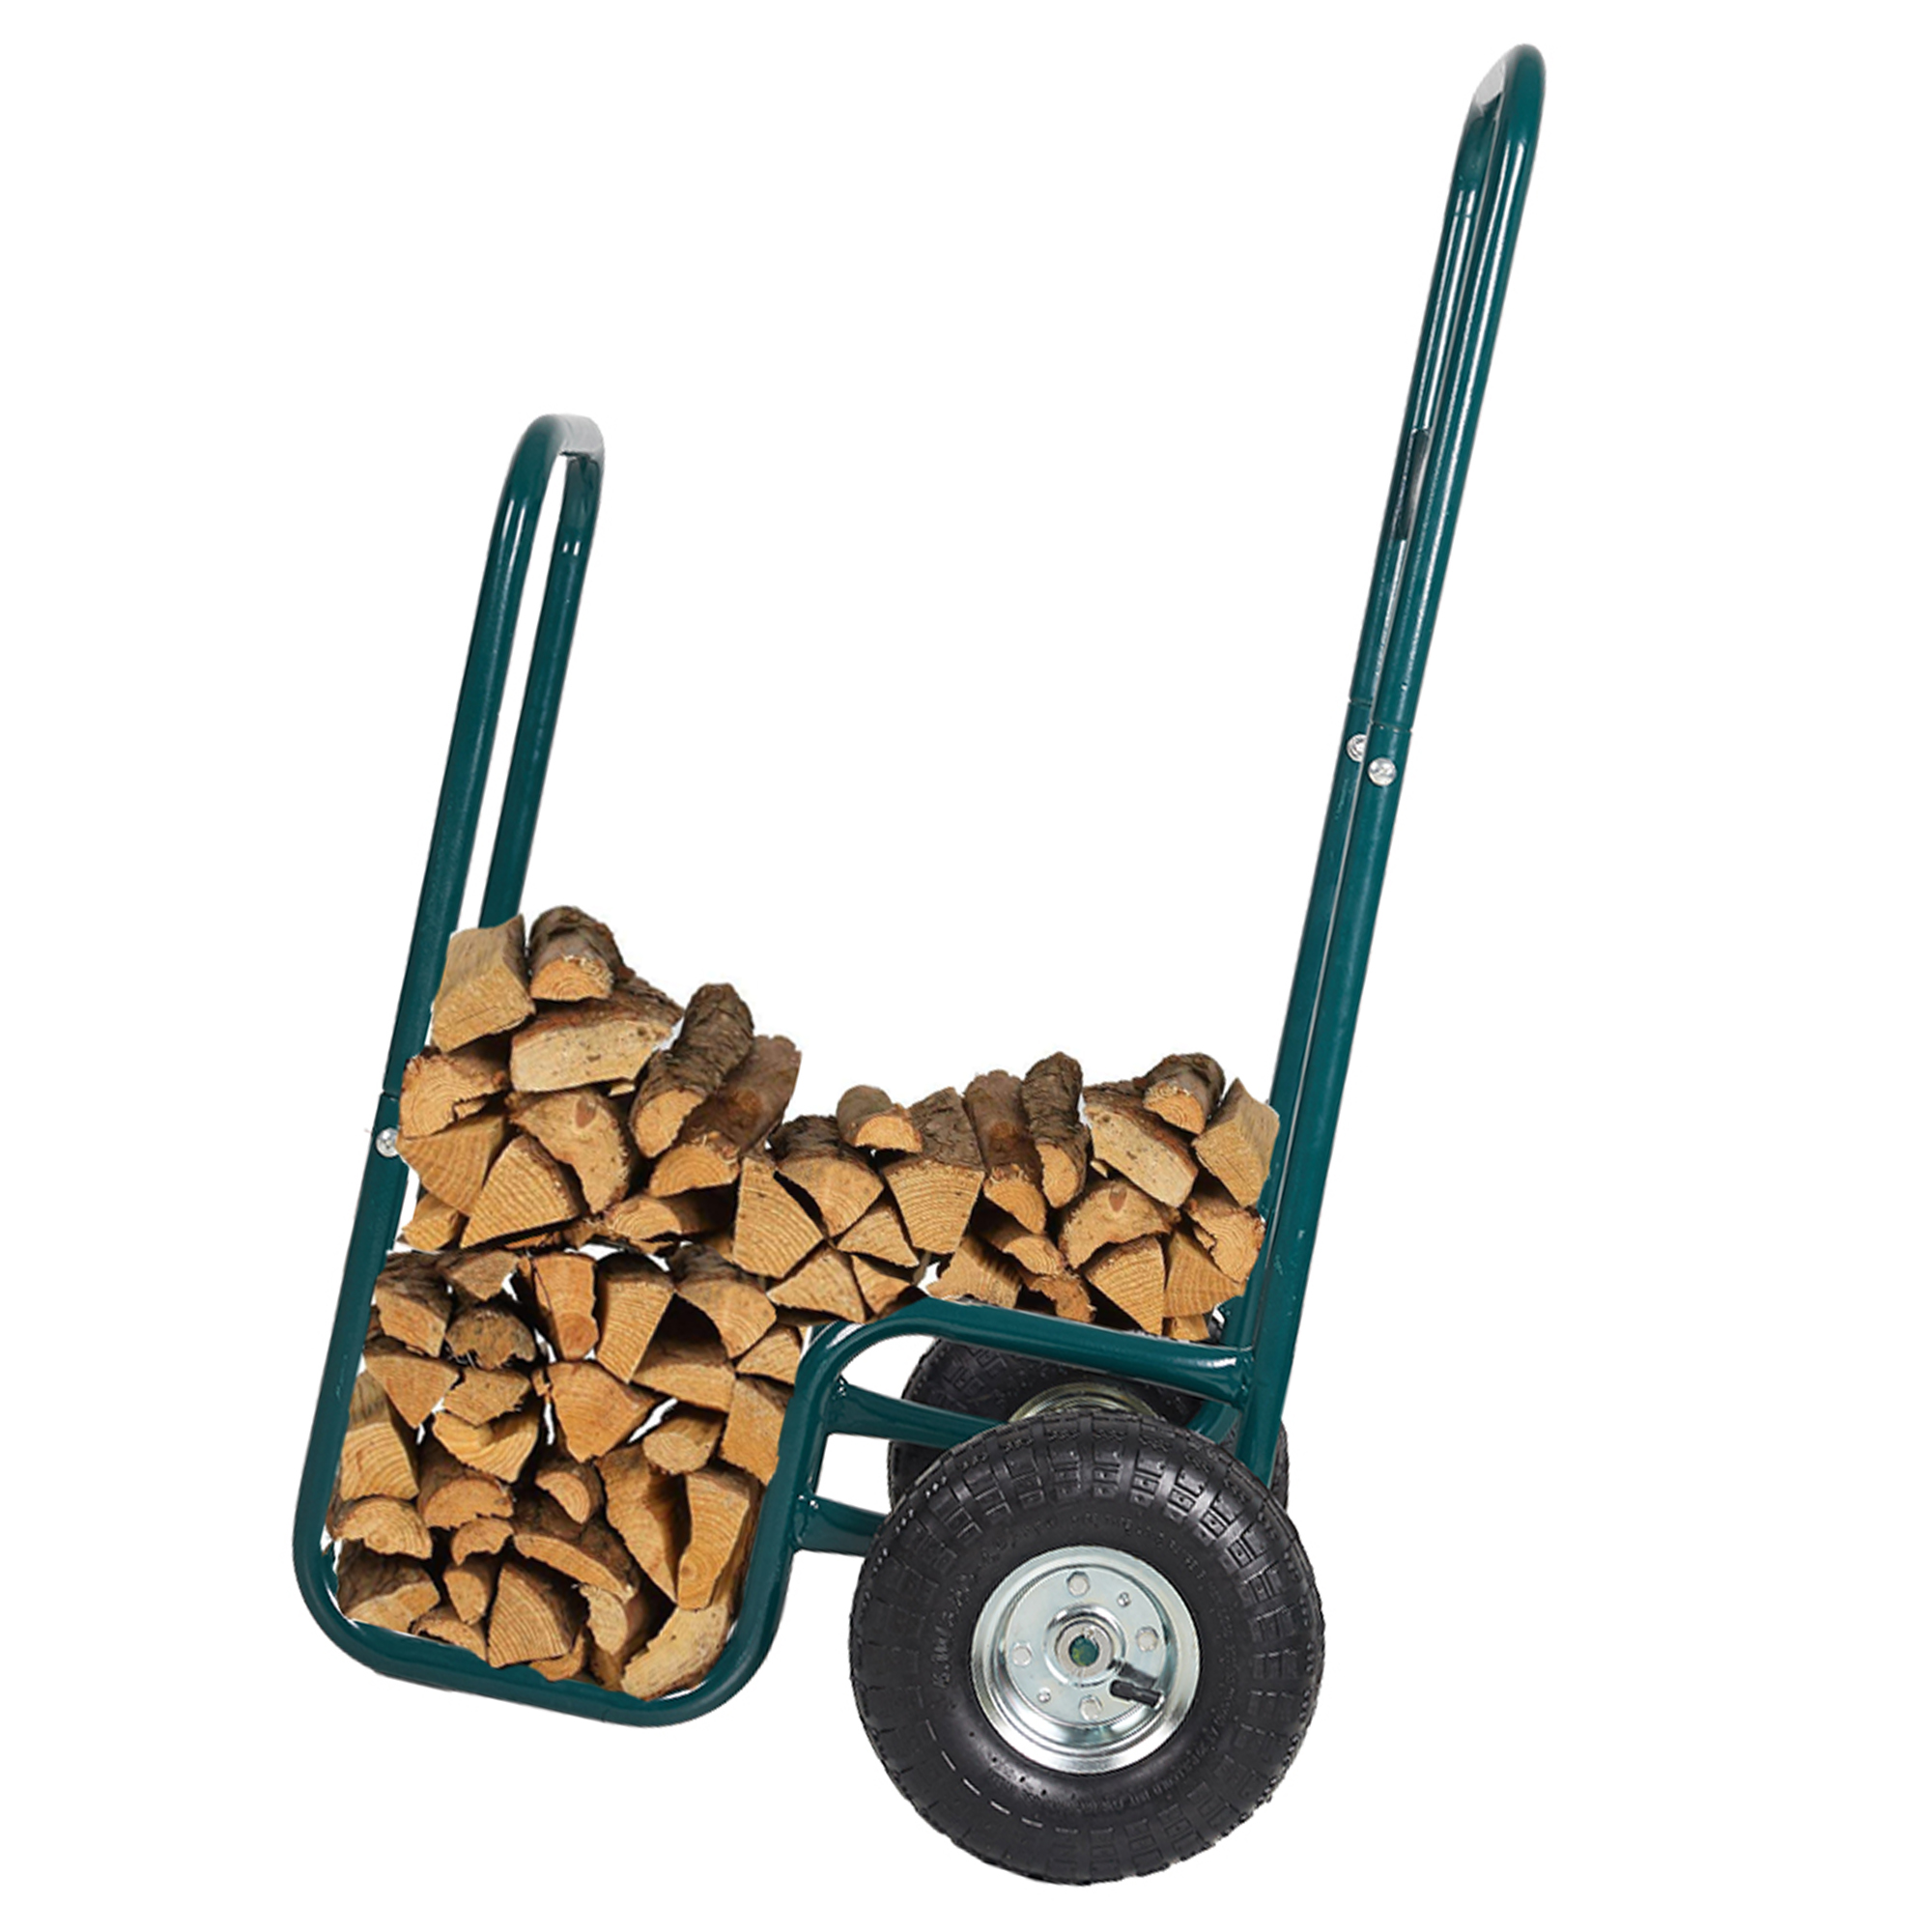 Karmas Product Firewood Log Rack Carrier Cart-220 LB Weight Capacity Wood Rack Storage Mover with Rolling Wheel for Indoor & Outdoor Use